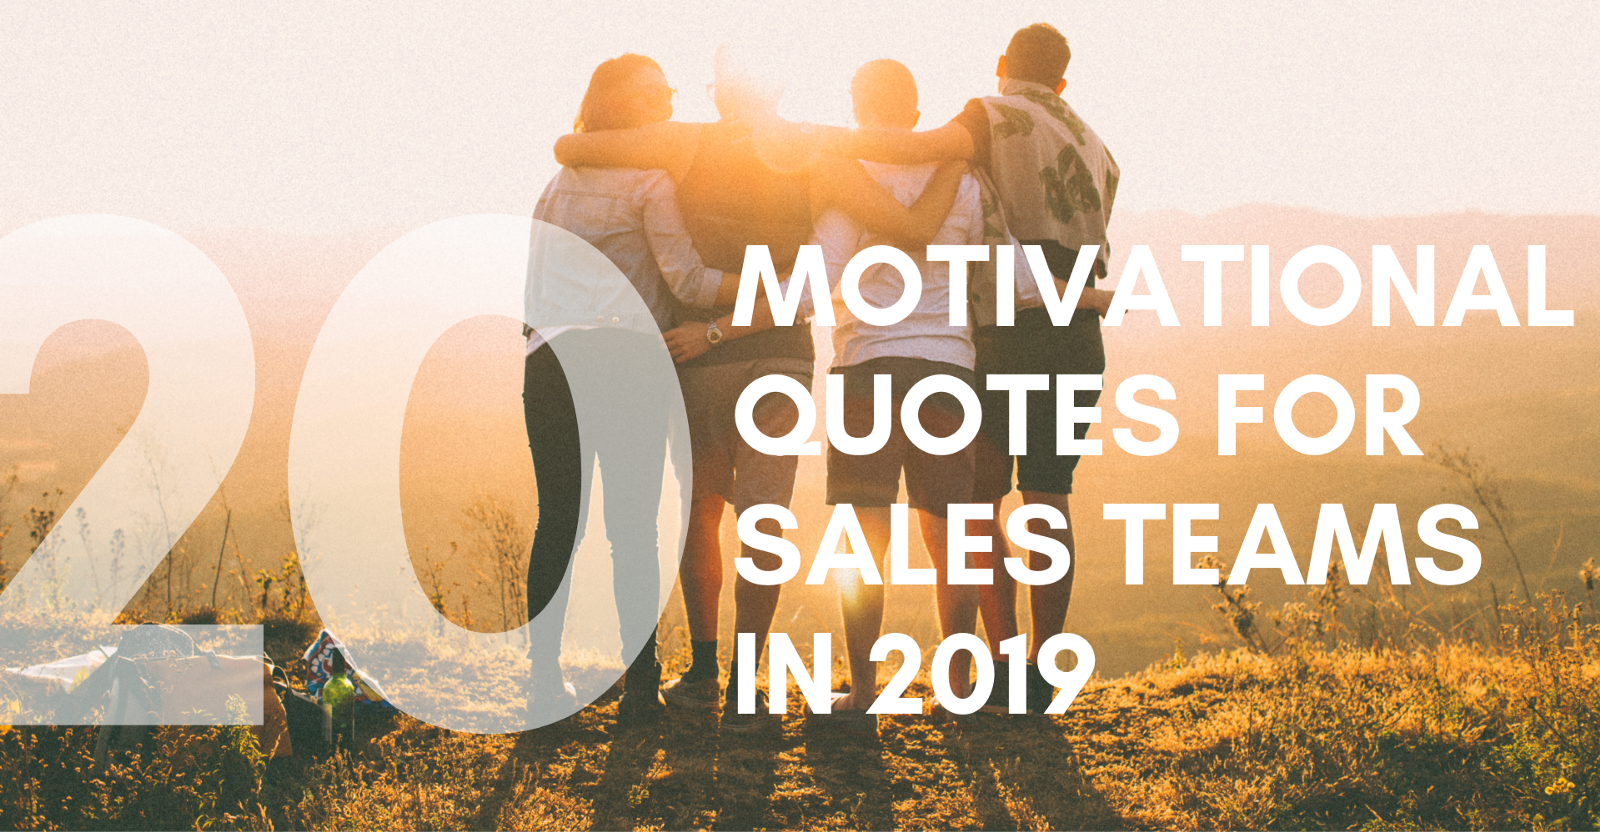 20 Motivational Quotes To Increase Sales And Encourage Teamwork In 2019